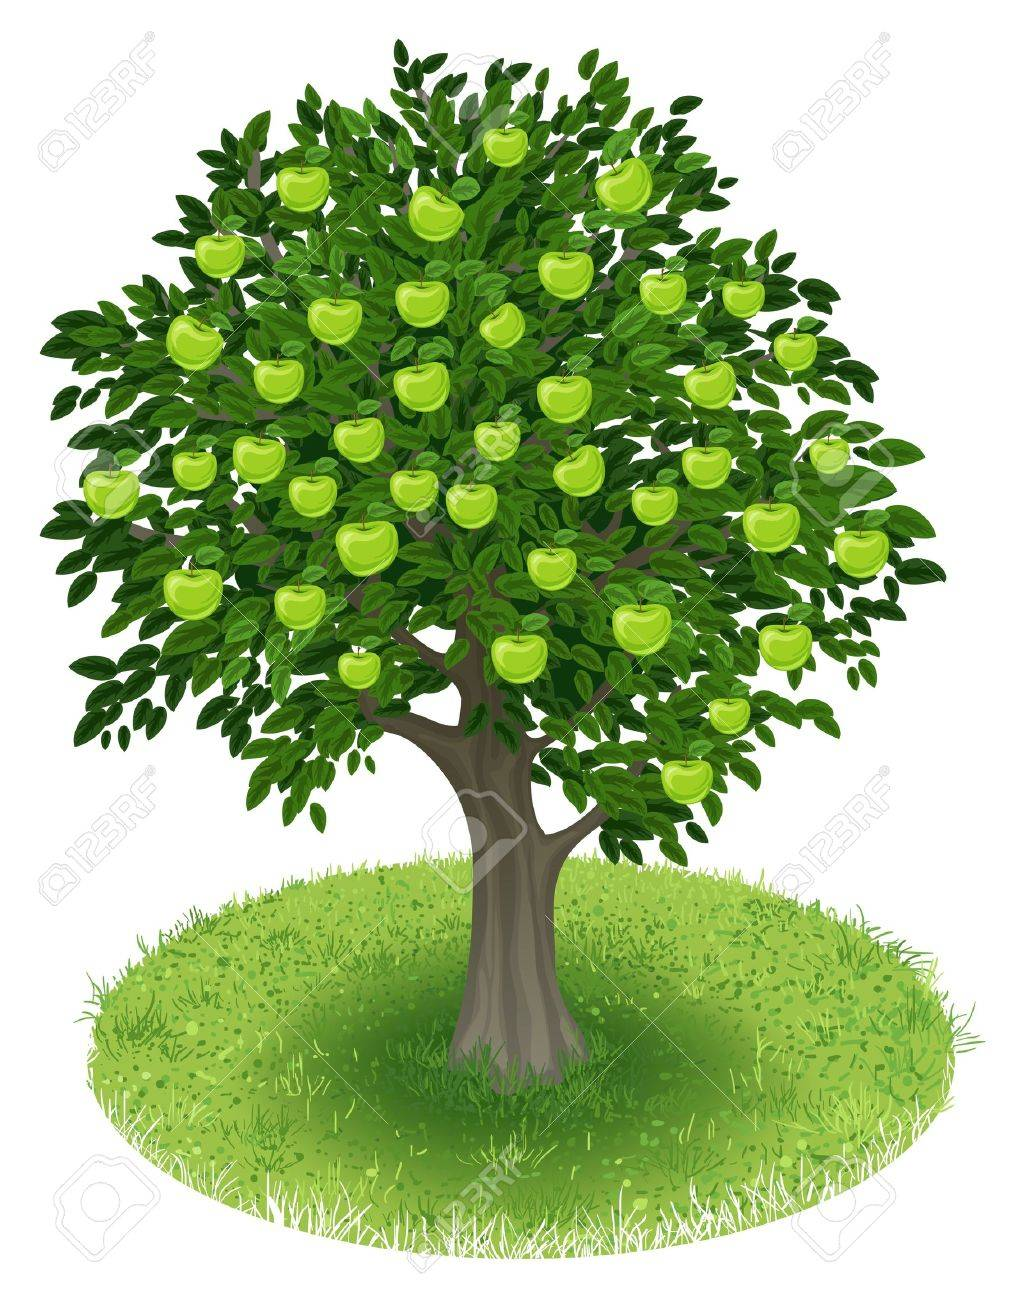 Summer Apple Tree with green apple fruits in green field, illustration Stock Vector - 19285540